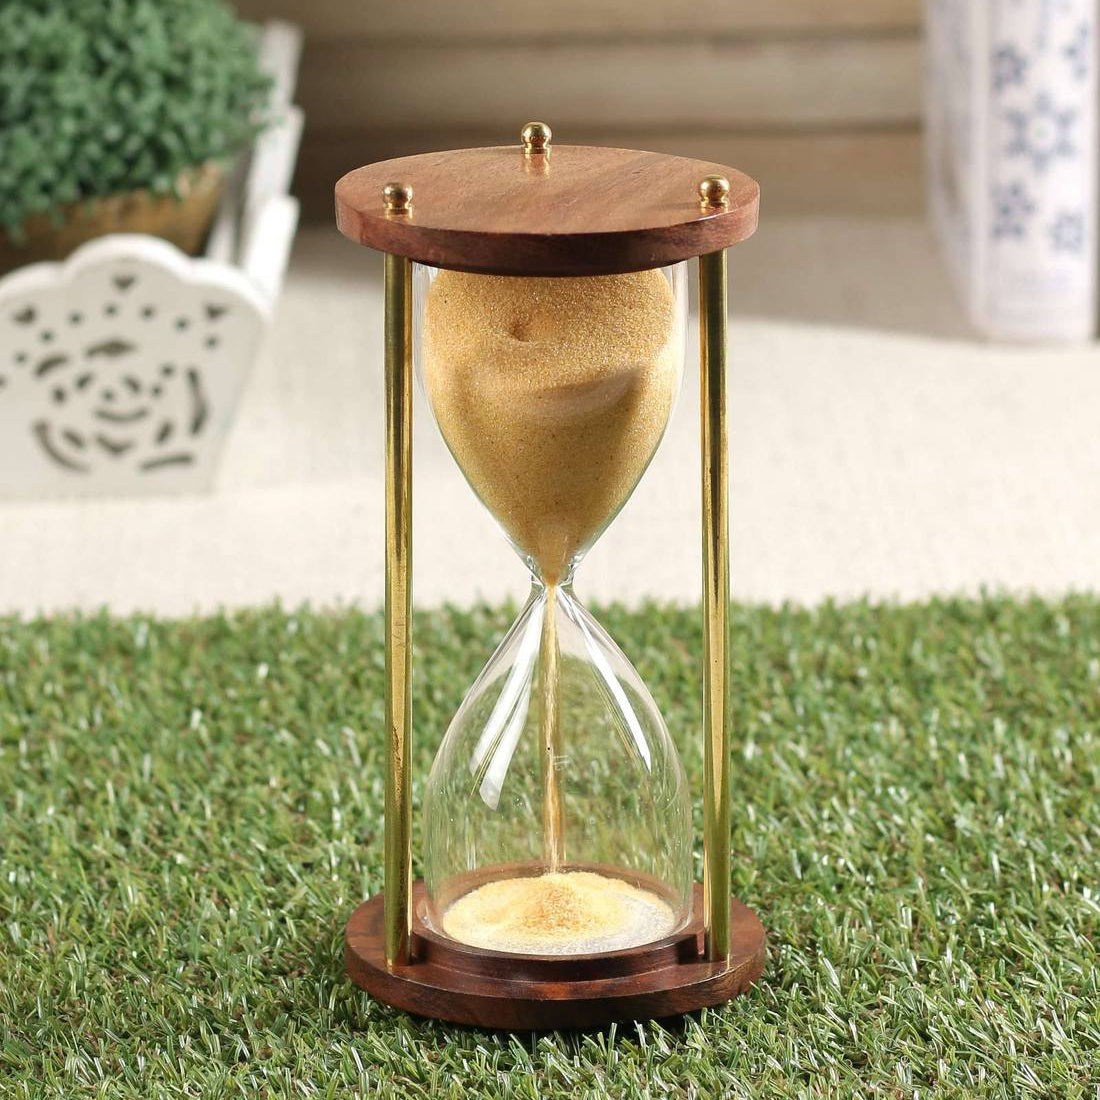 Antique Wooden Sand Timer 1 Minute ( Yellow, Brass, Wood )